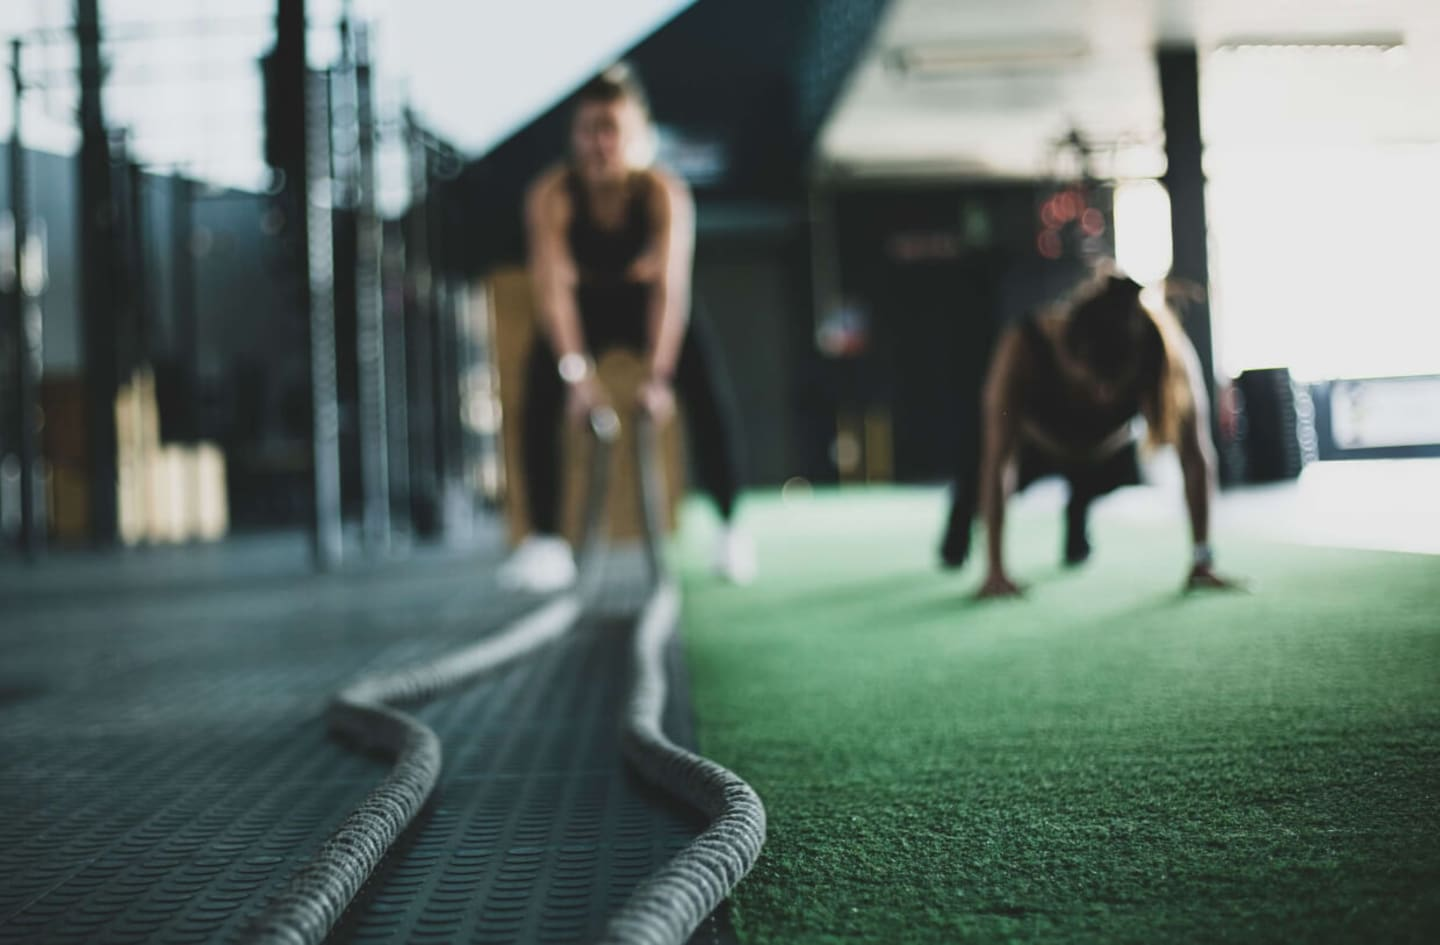 Health And Cleaning Tips For Gyms